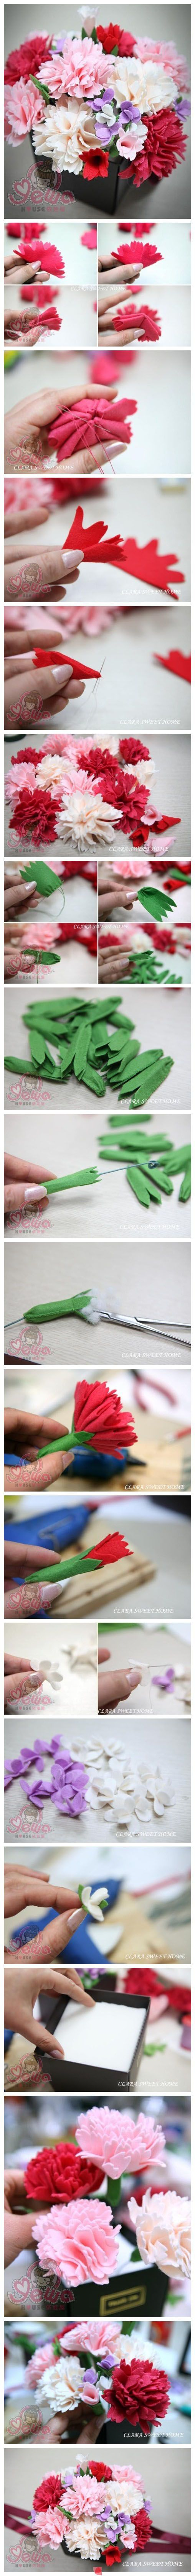 Felt flowers - carnations DIY